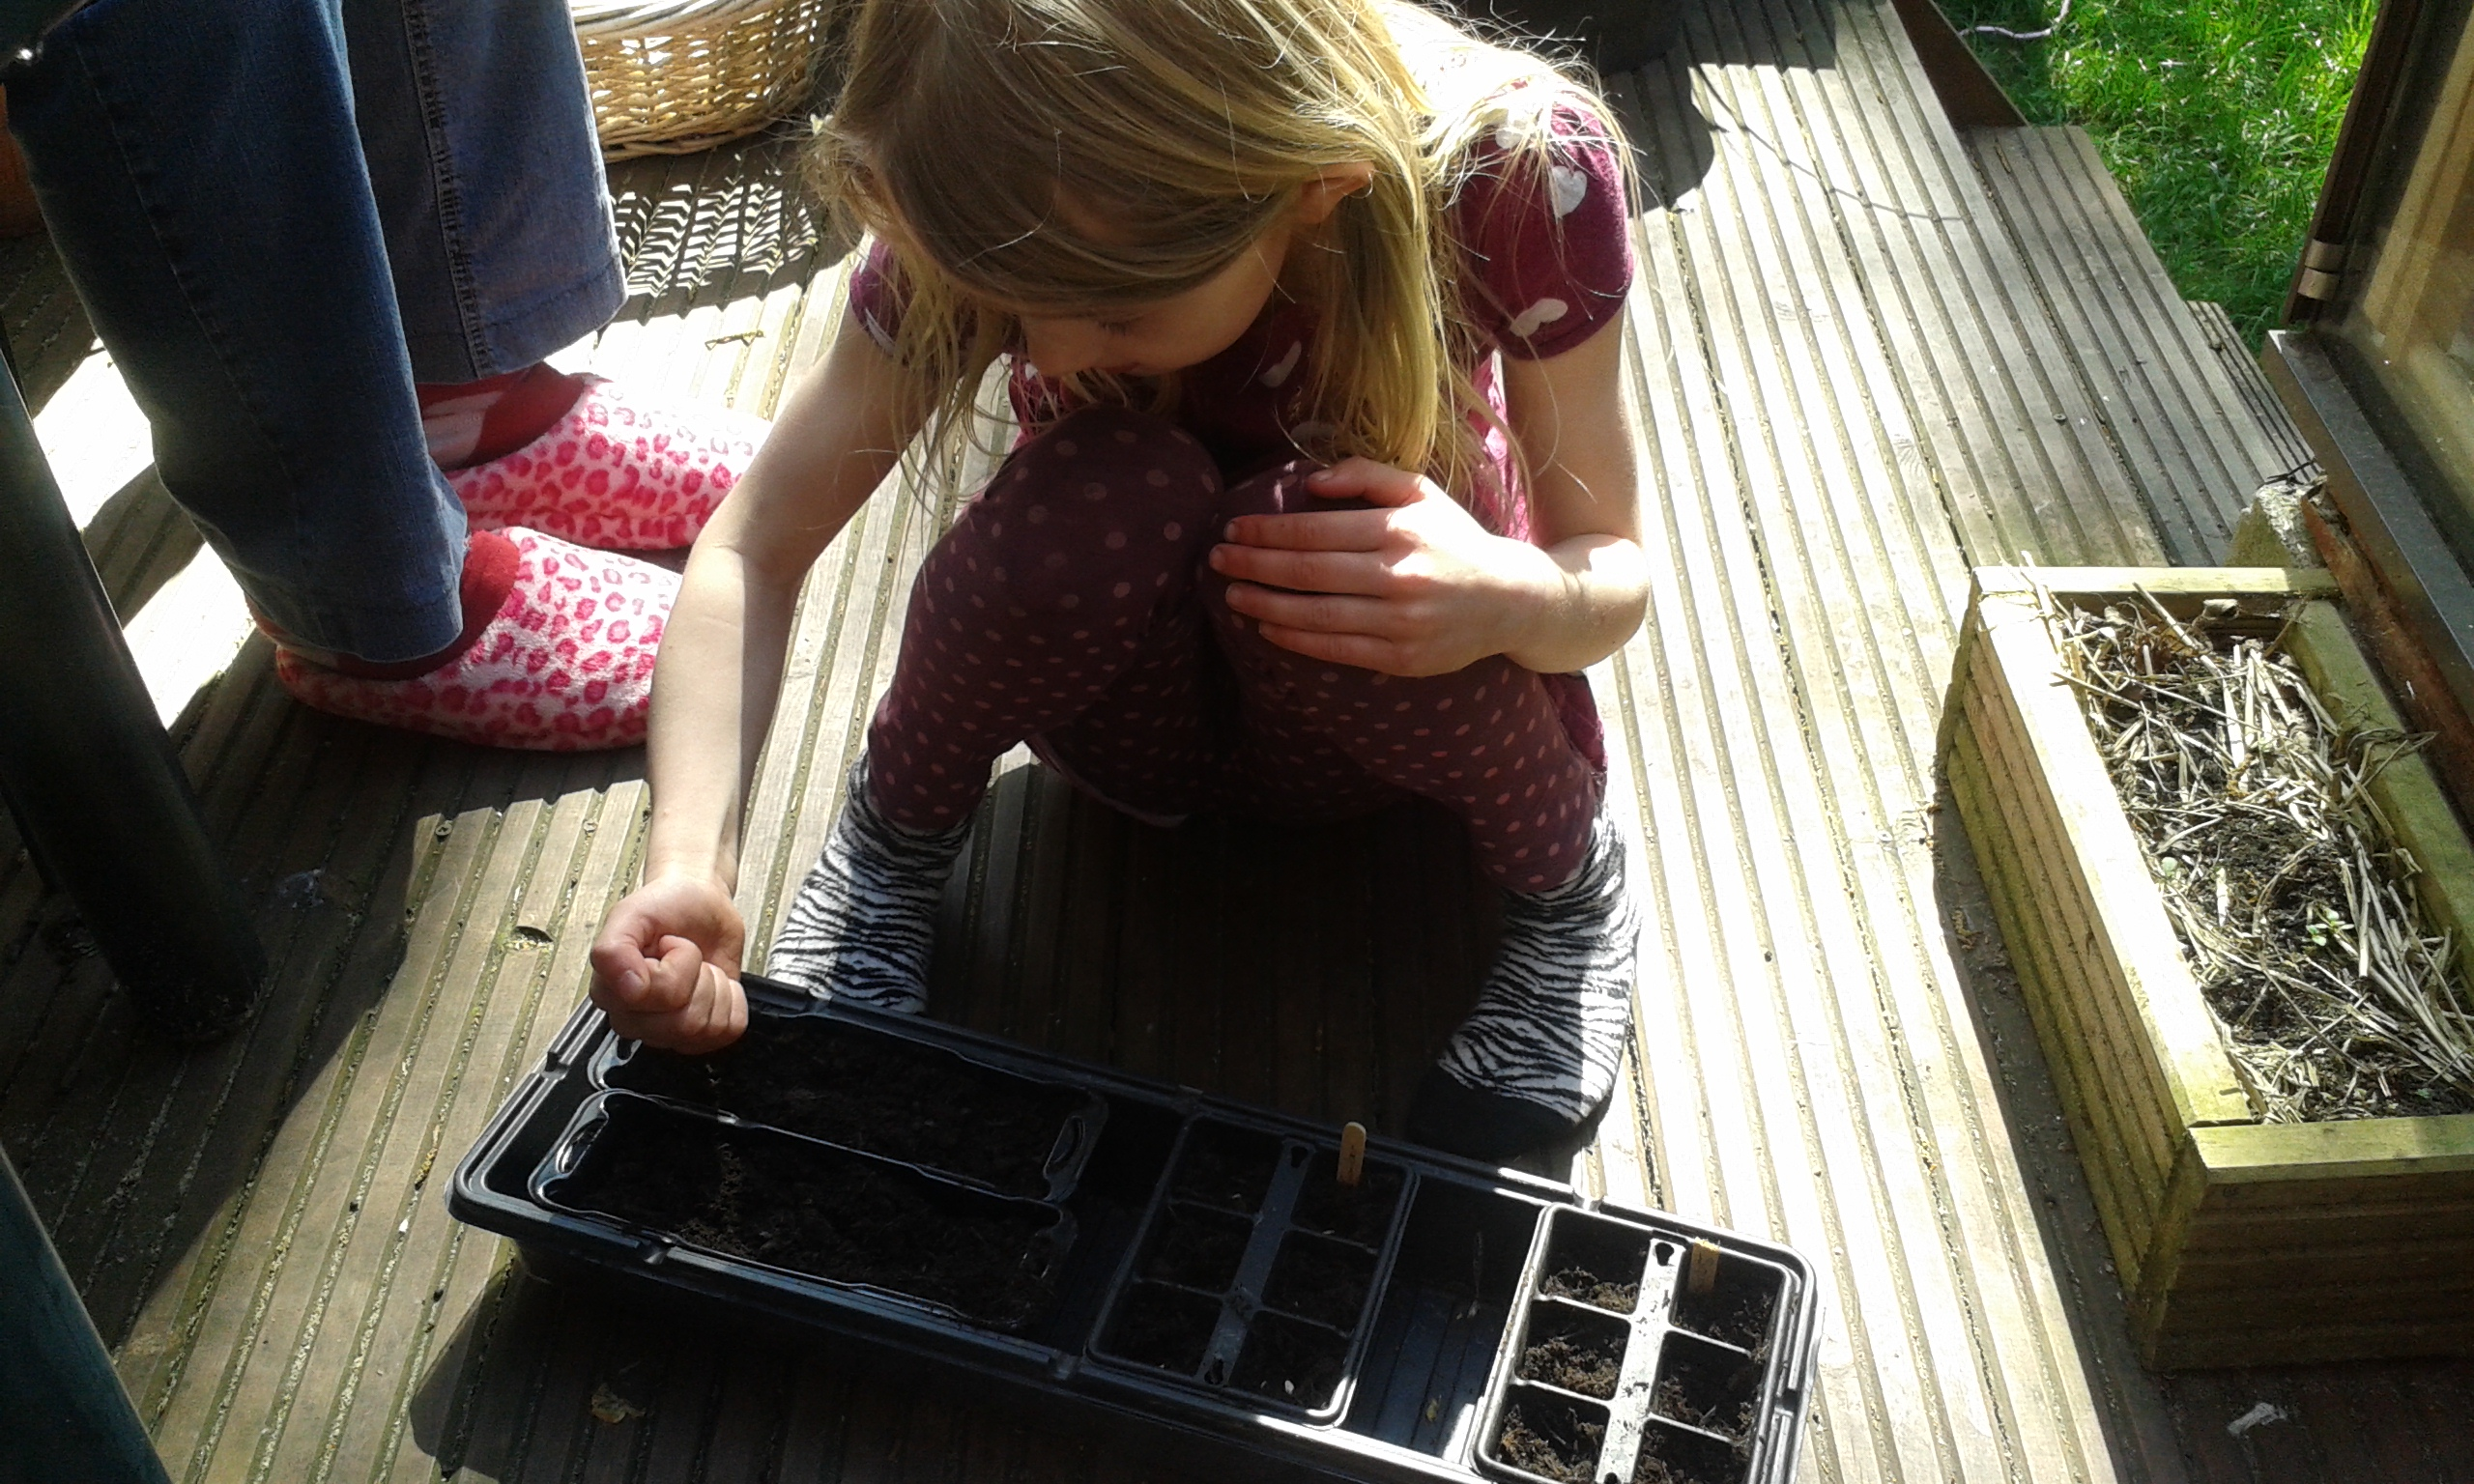 sowing seeds